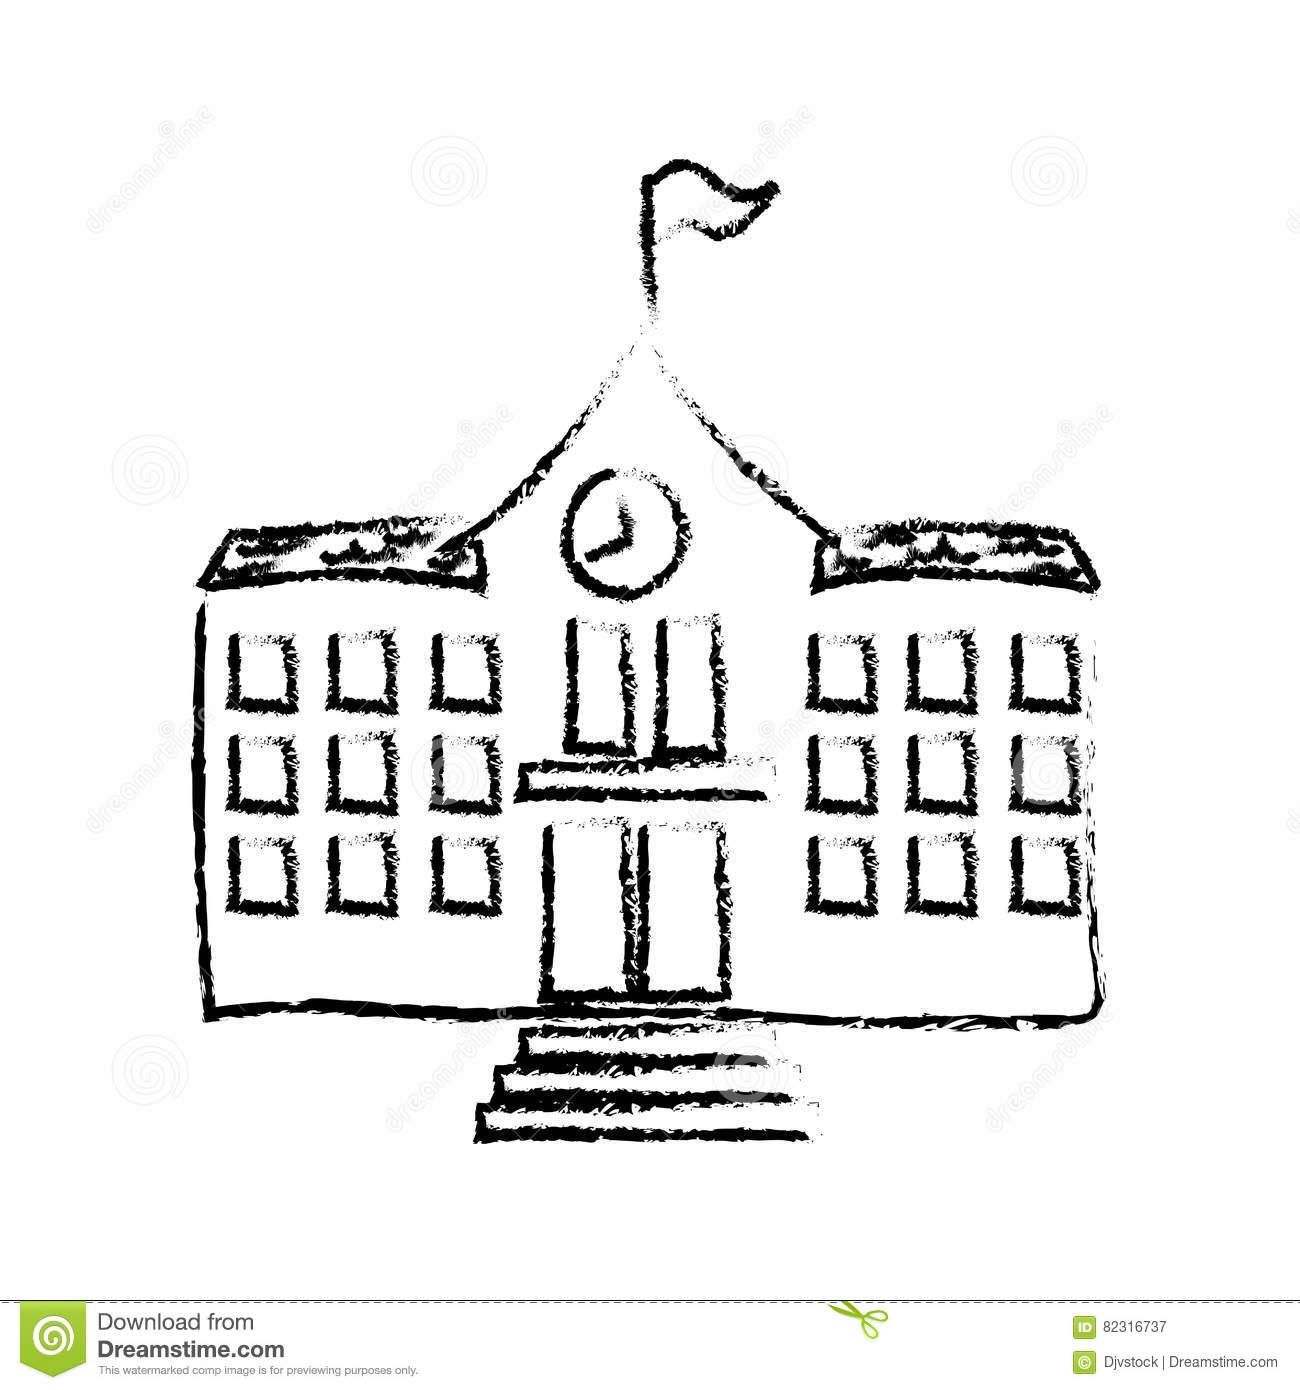 School building draw stock illustration. Illustration of ...